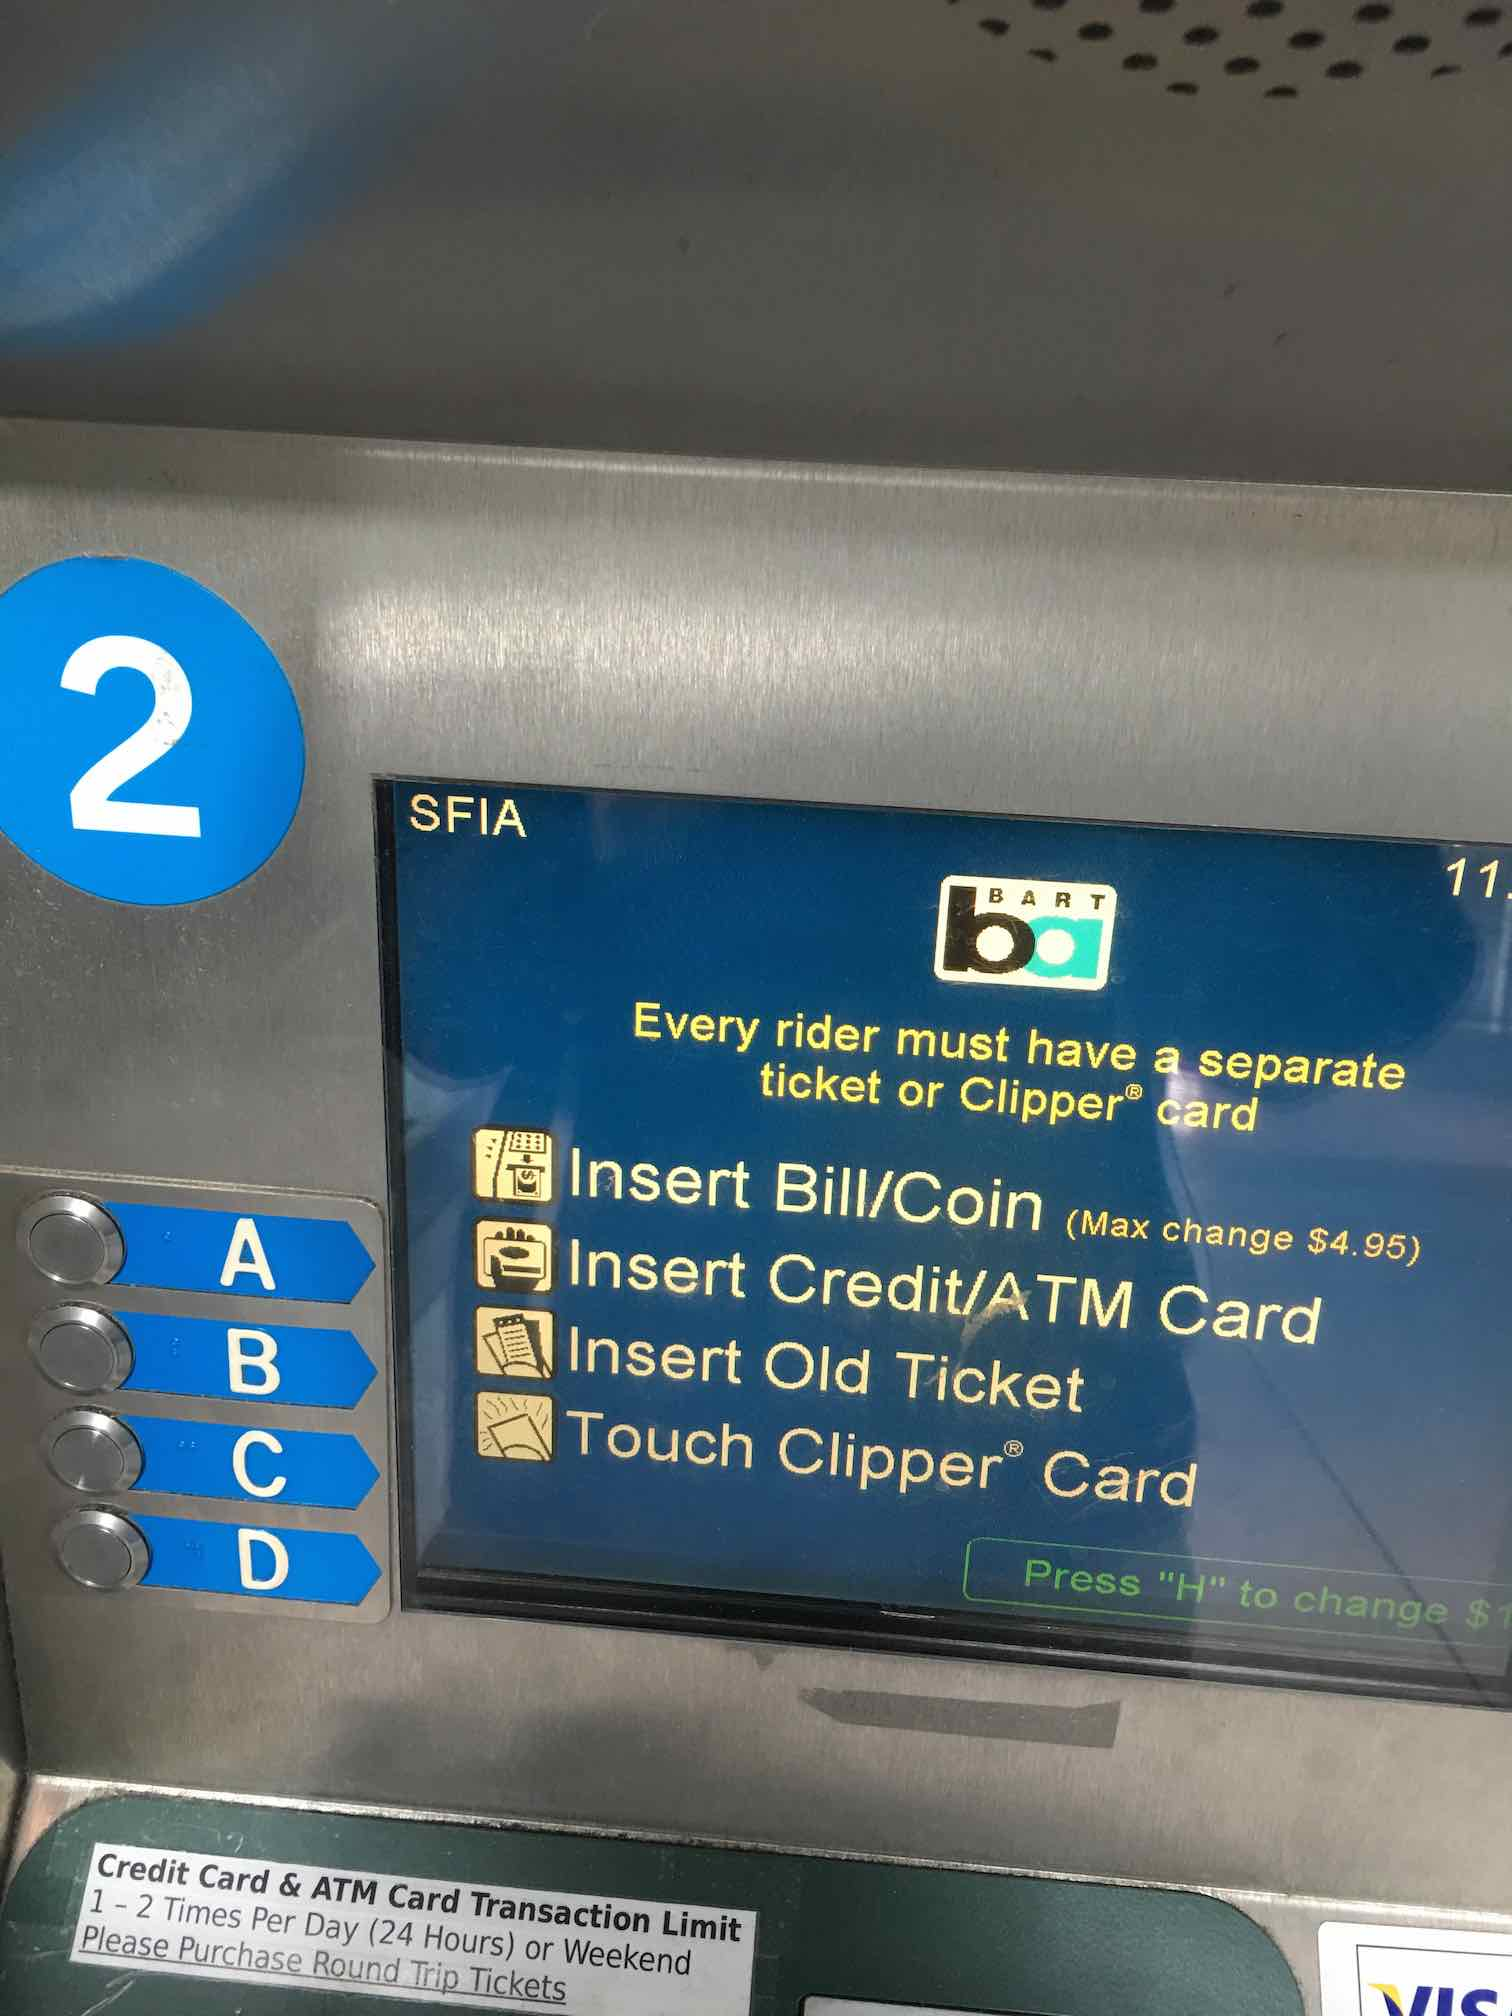 bart_ticket_purchase